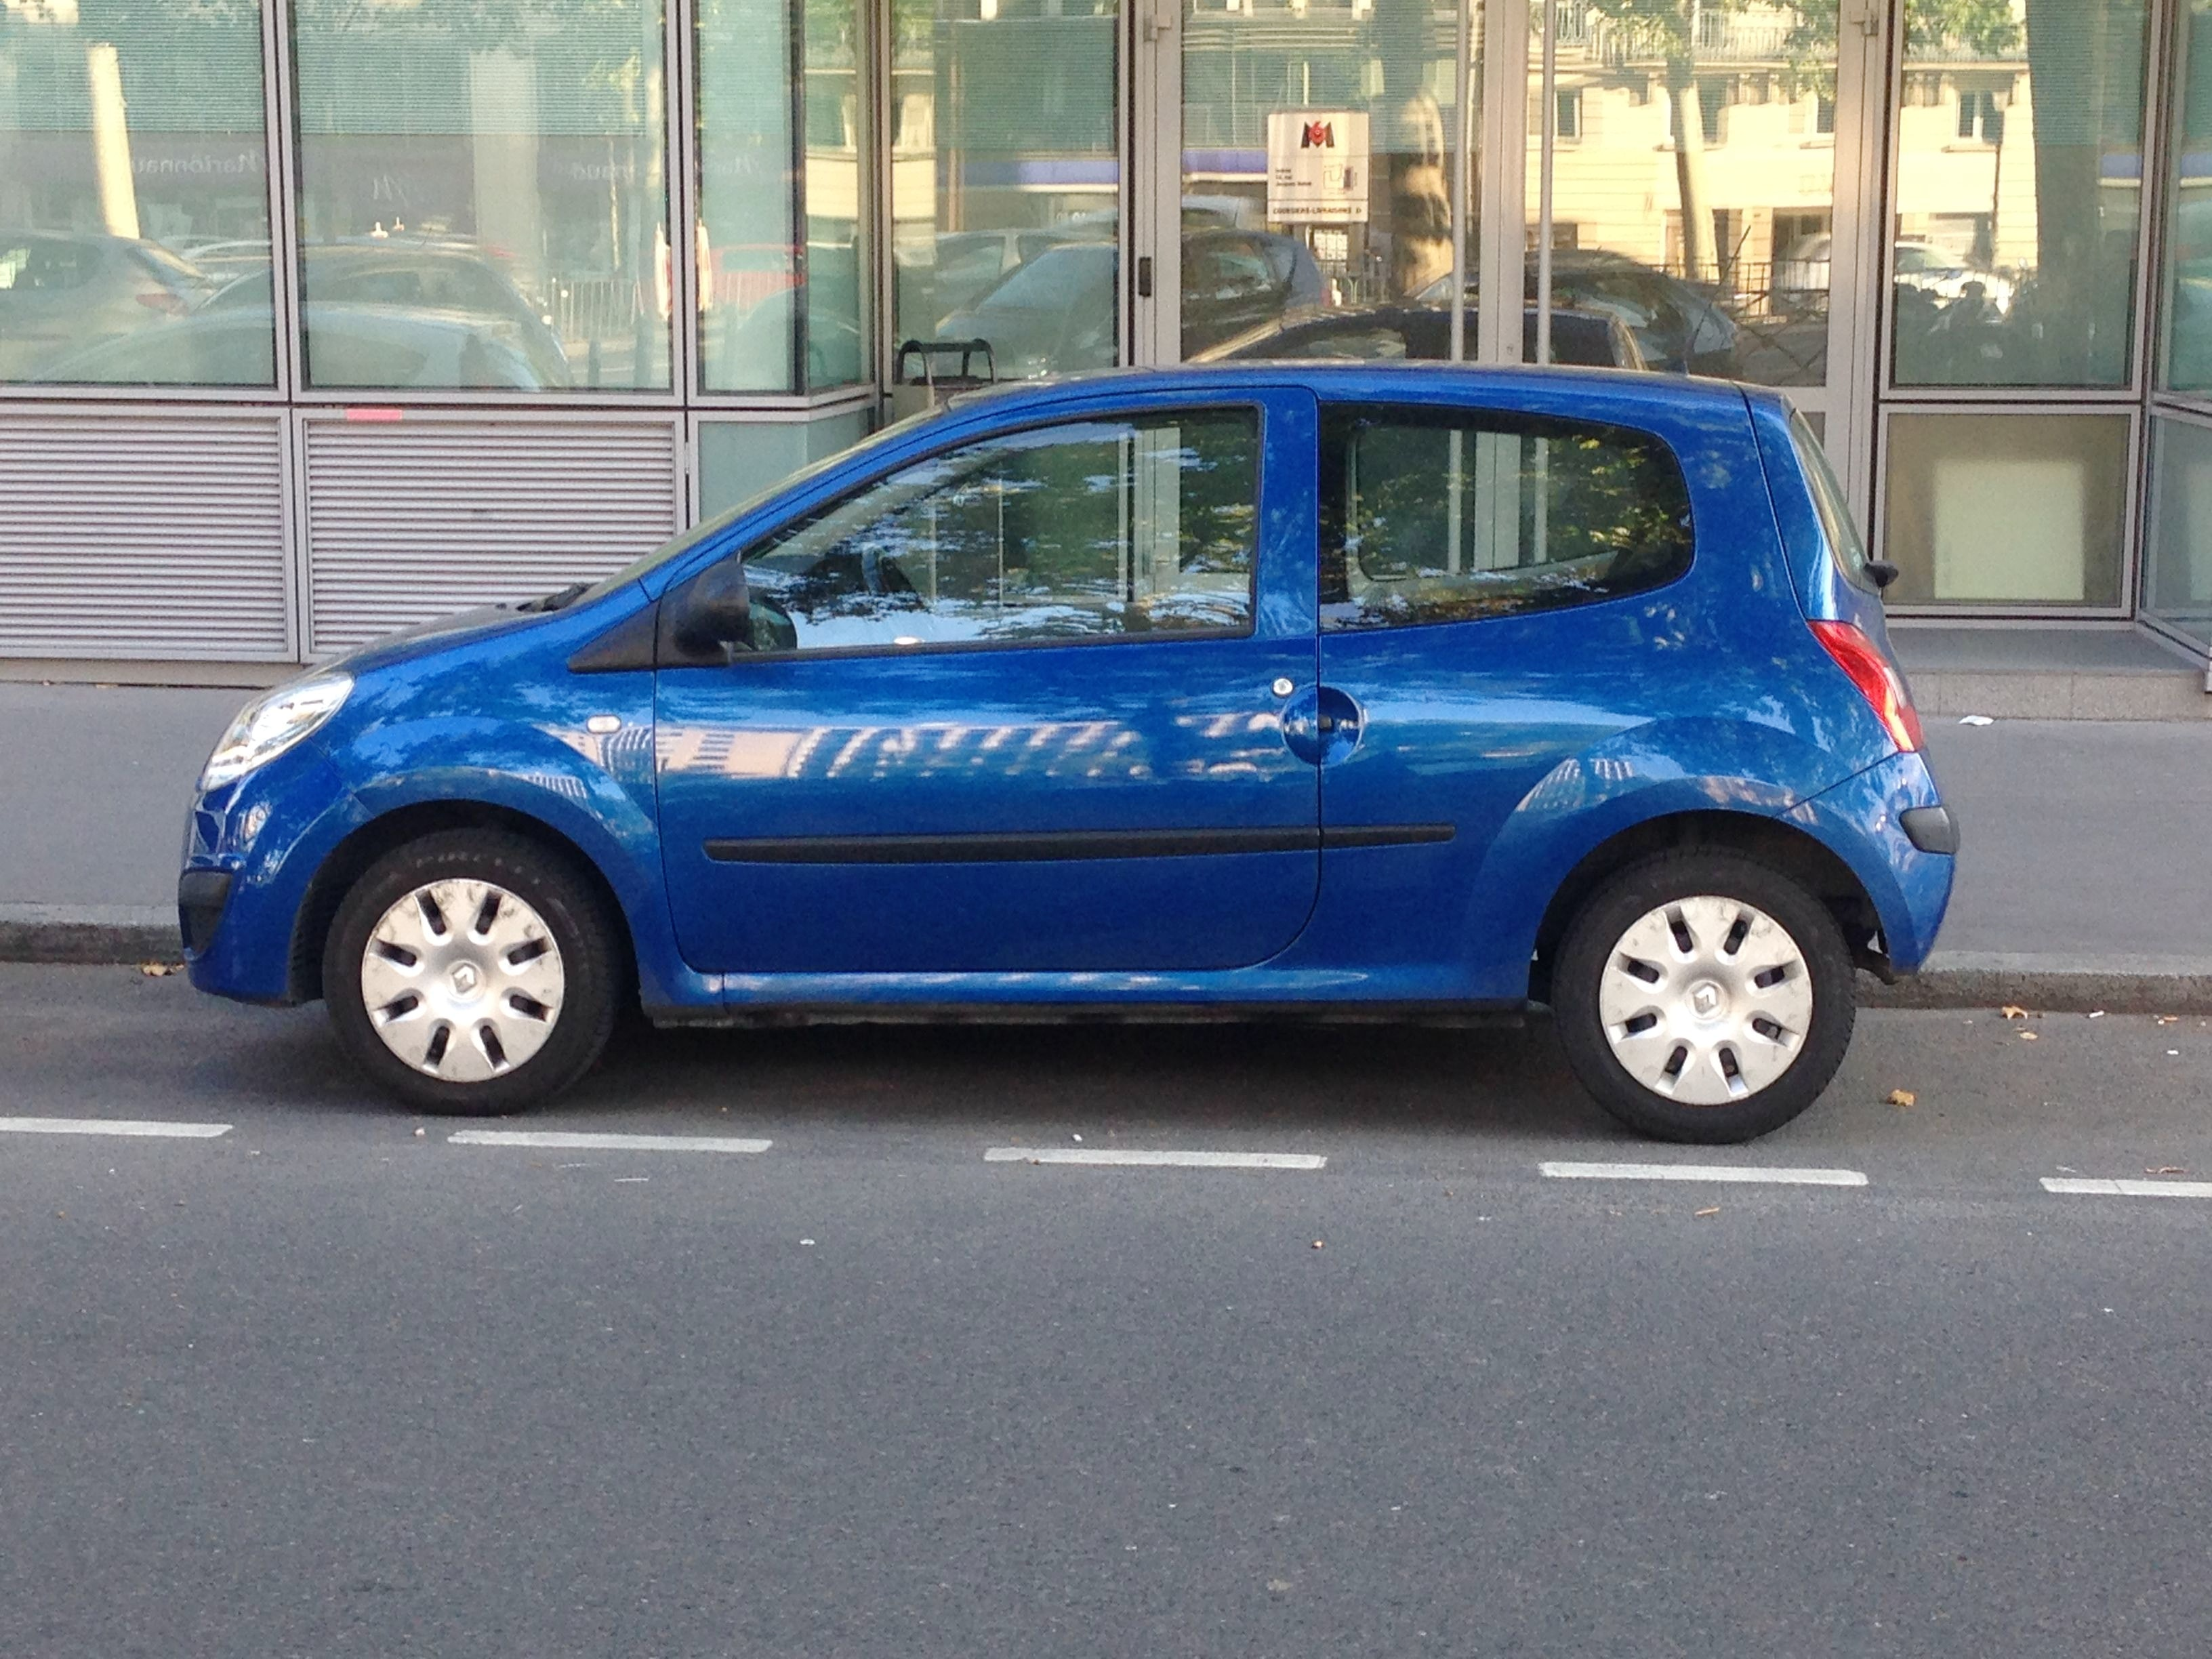 RENAULT TWINGO ACCESS 1.2, 2009, Essence